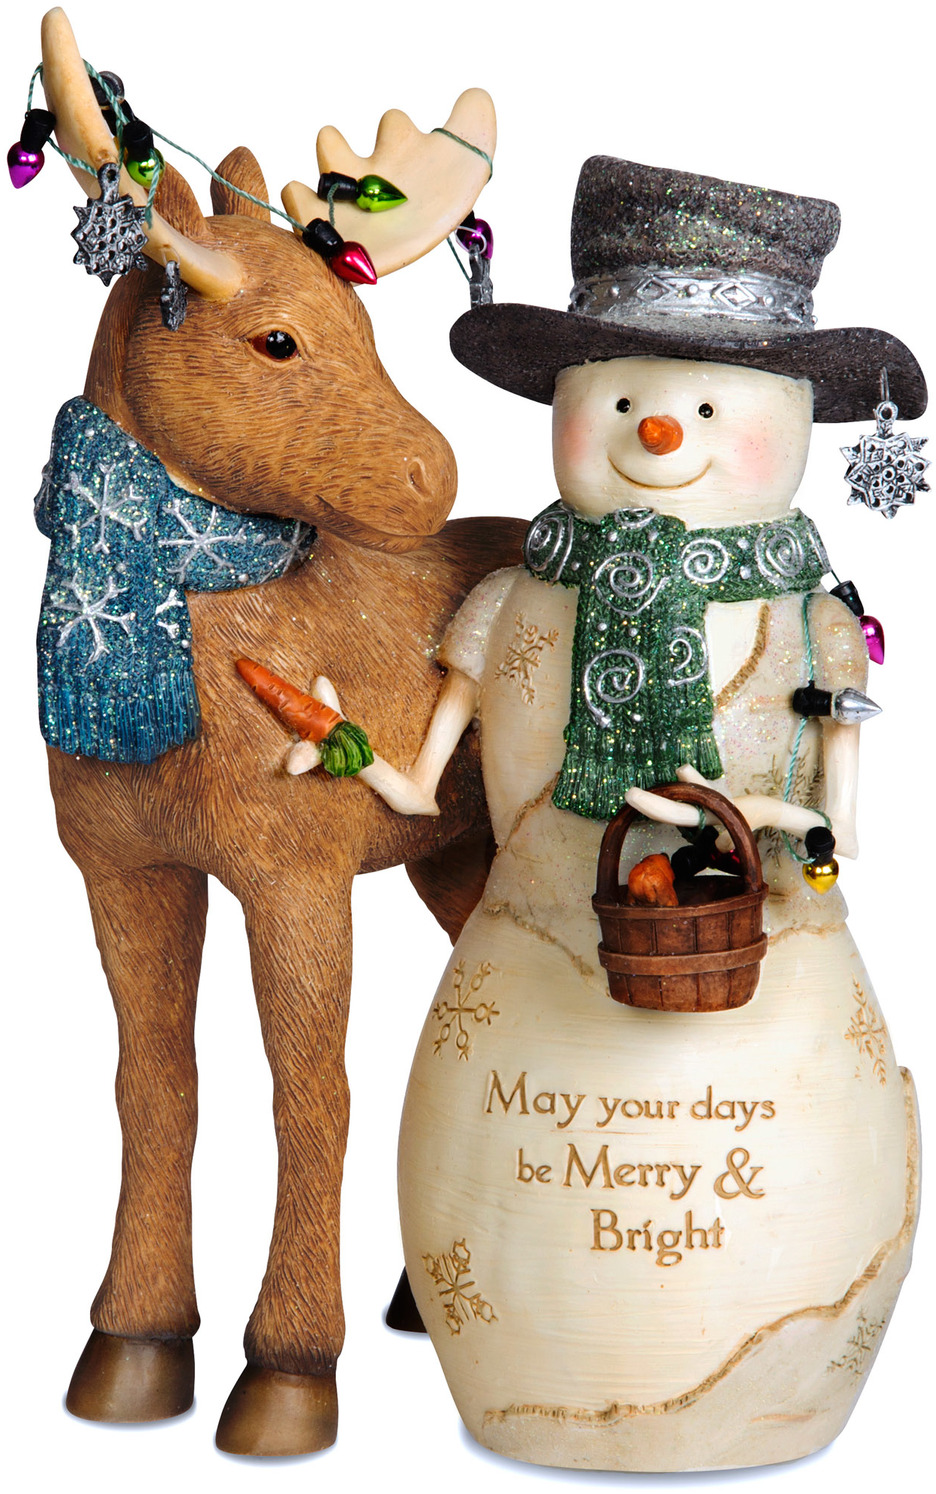 Merry & Bright by The Birchhearts - <em>Merry</em> - Christmas Snowman Figurine -